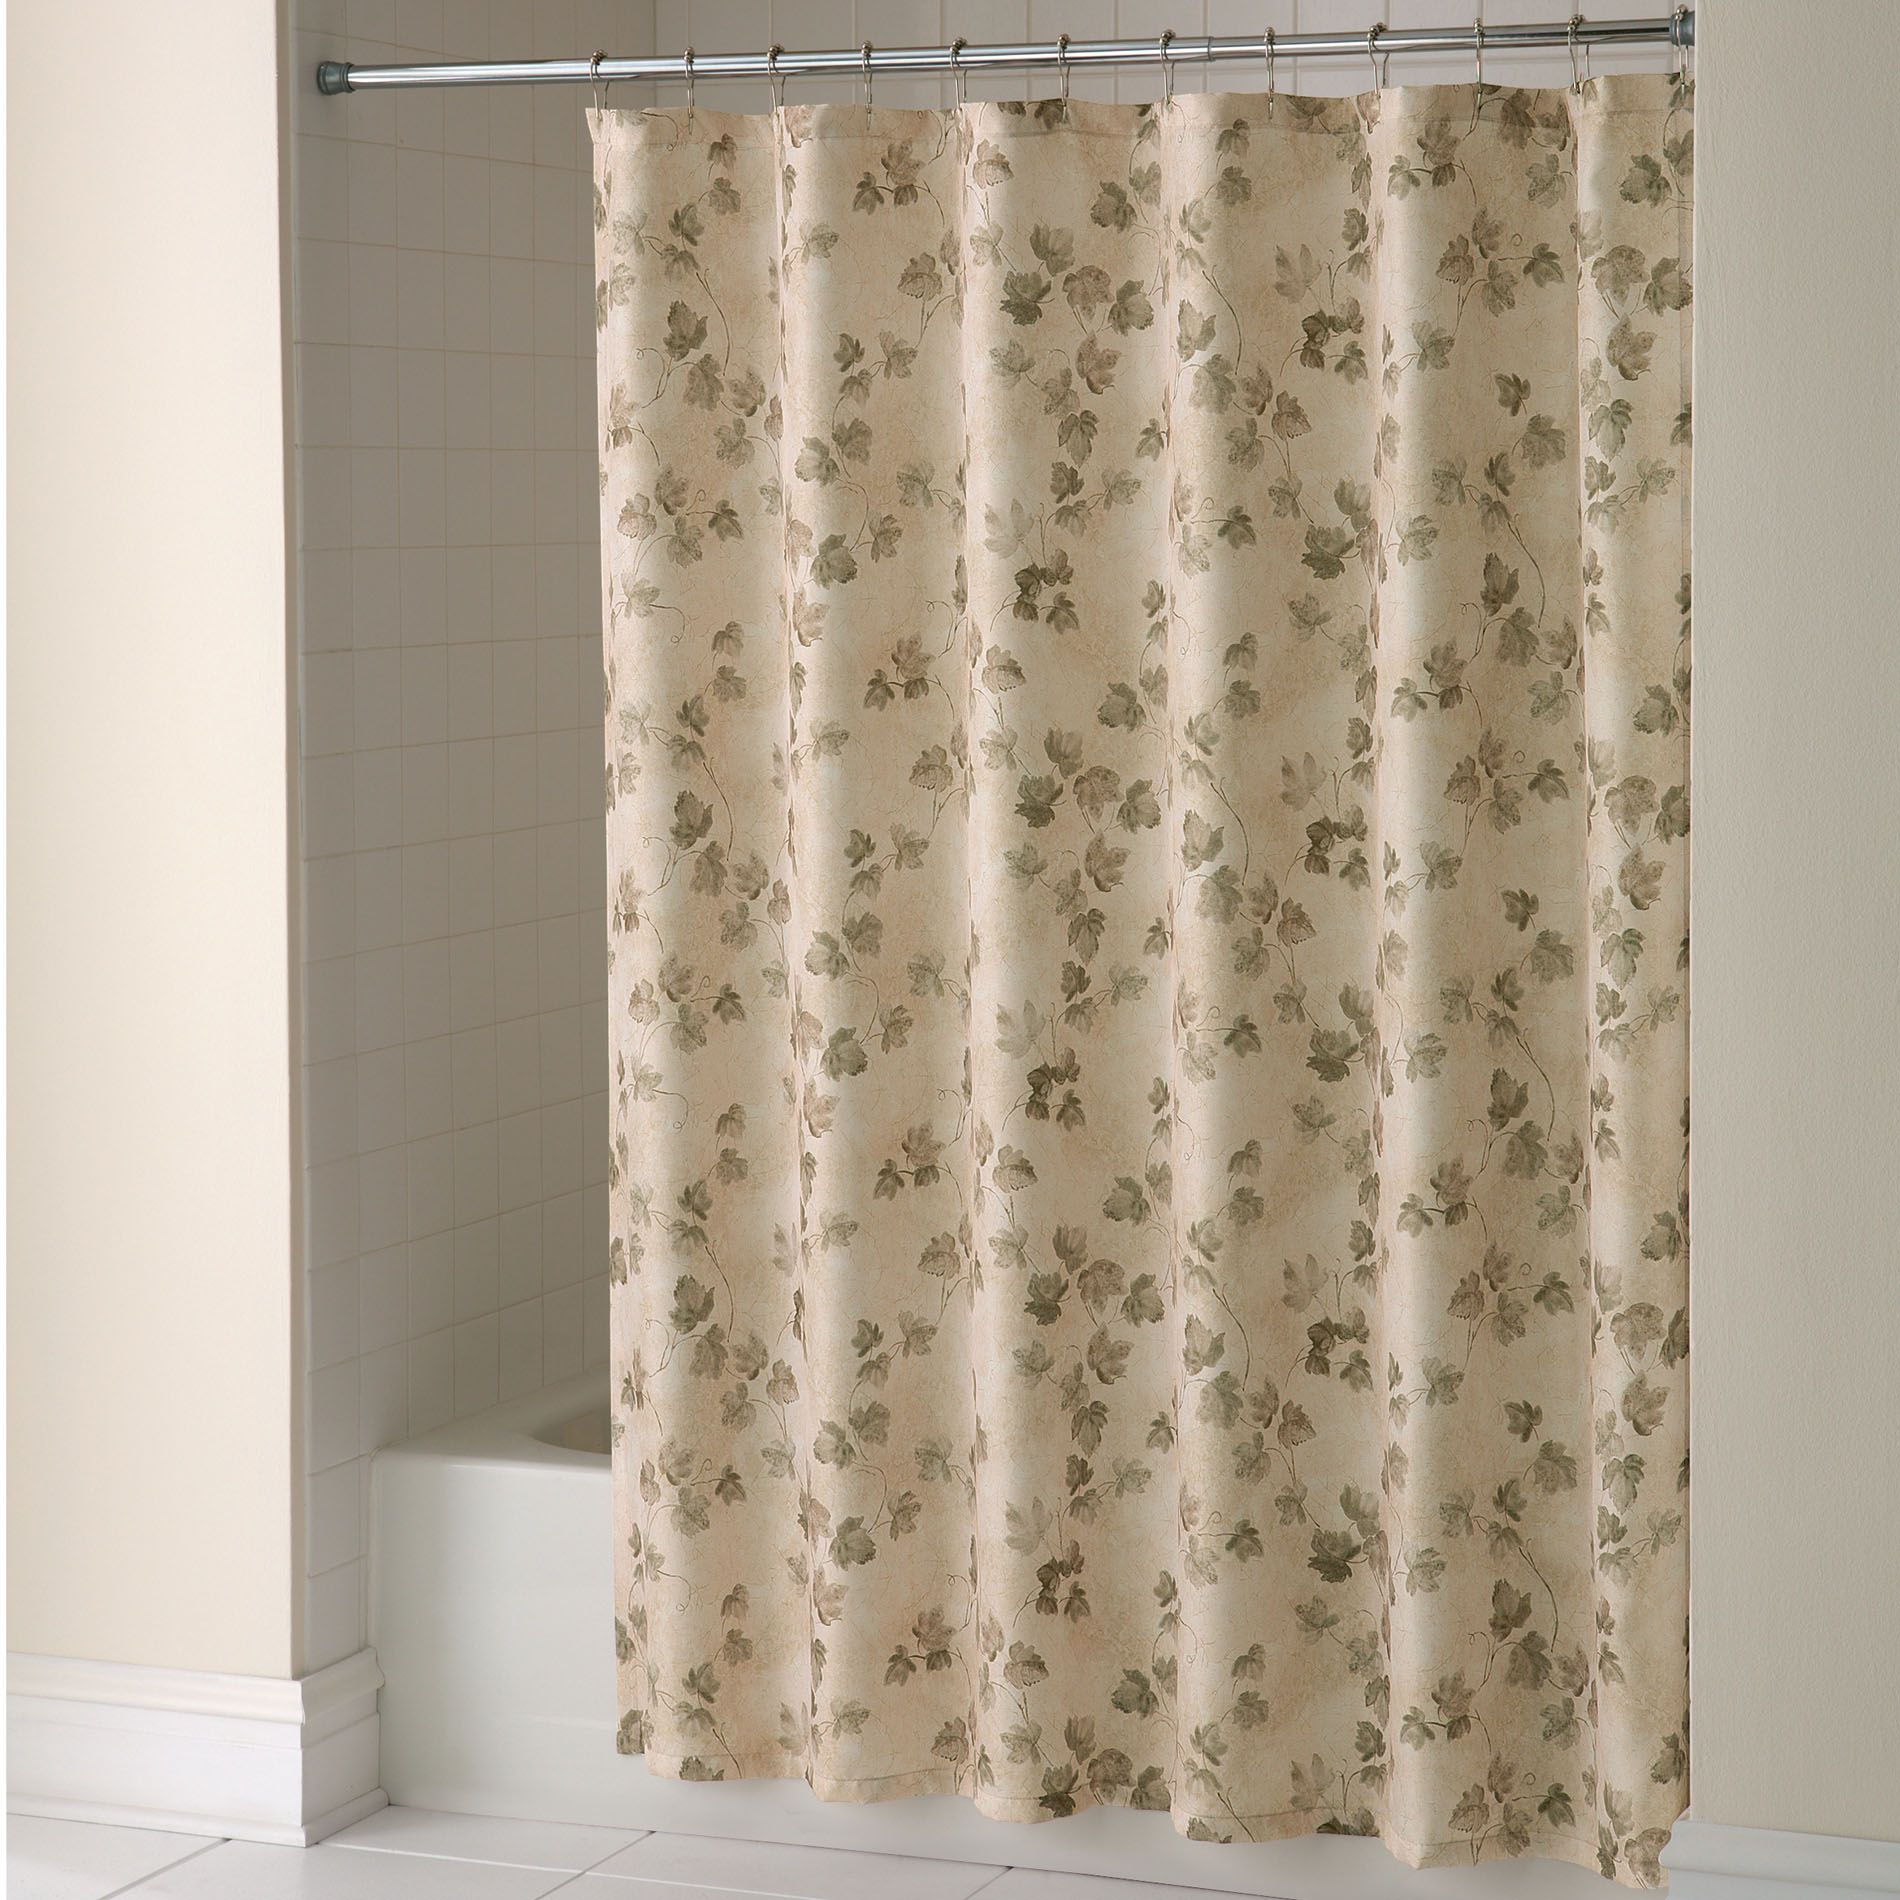 shower curtain classic ivy fabric